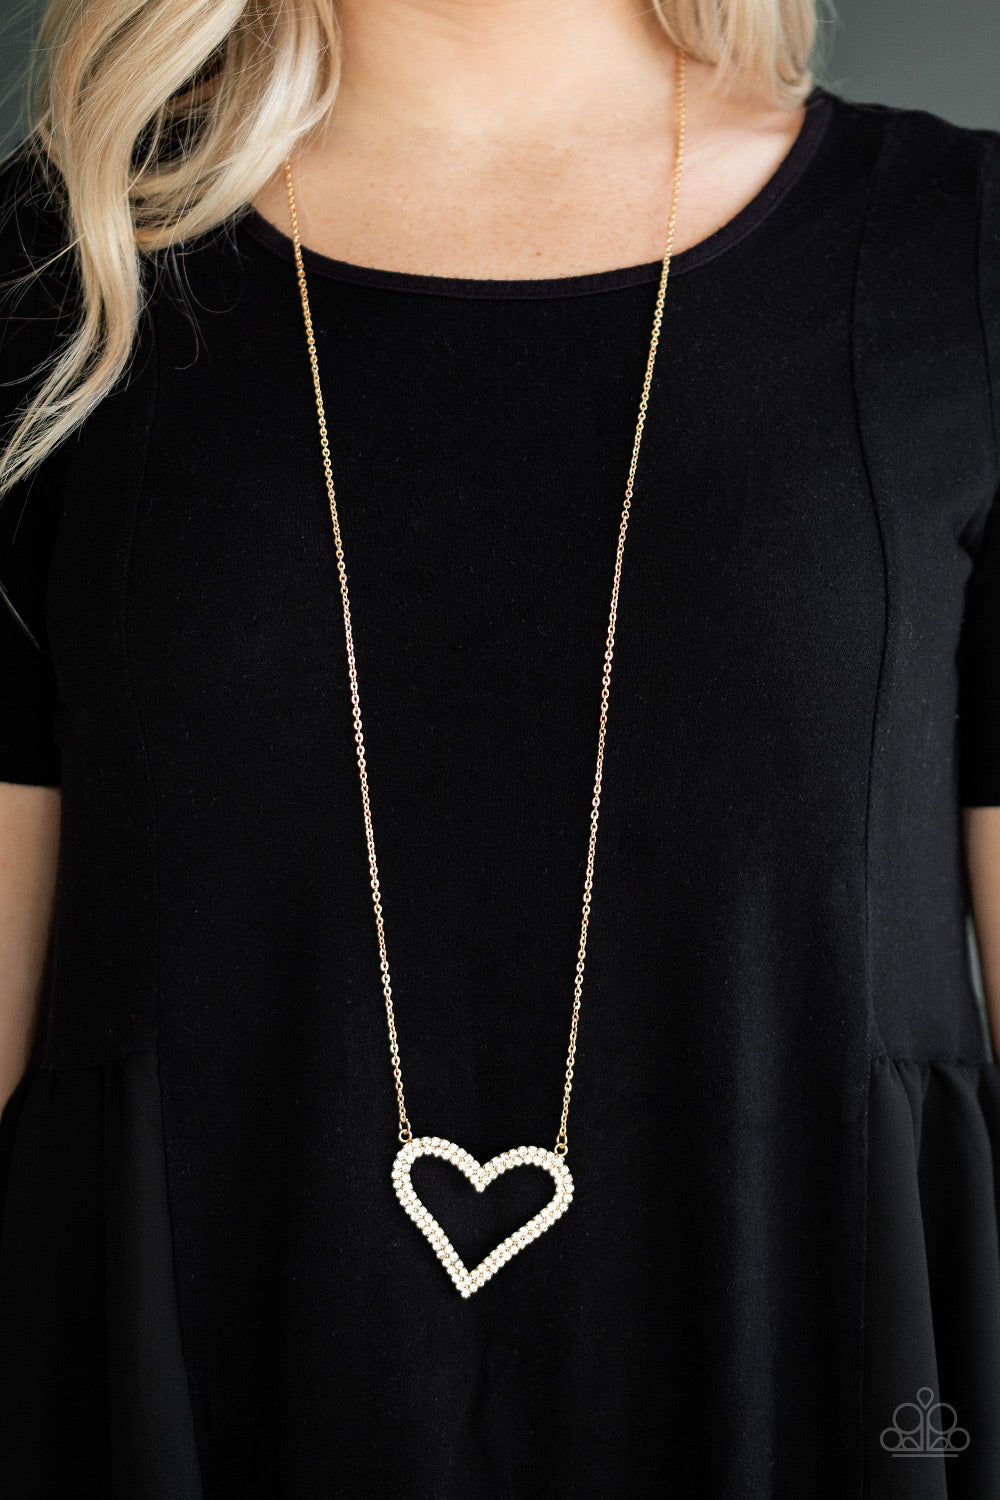 Paparazzi Accessories Pull Some Heart Strings Gold